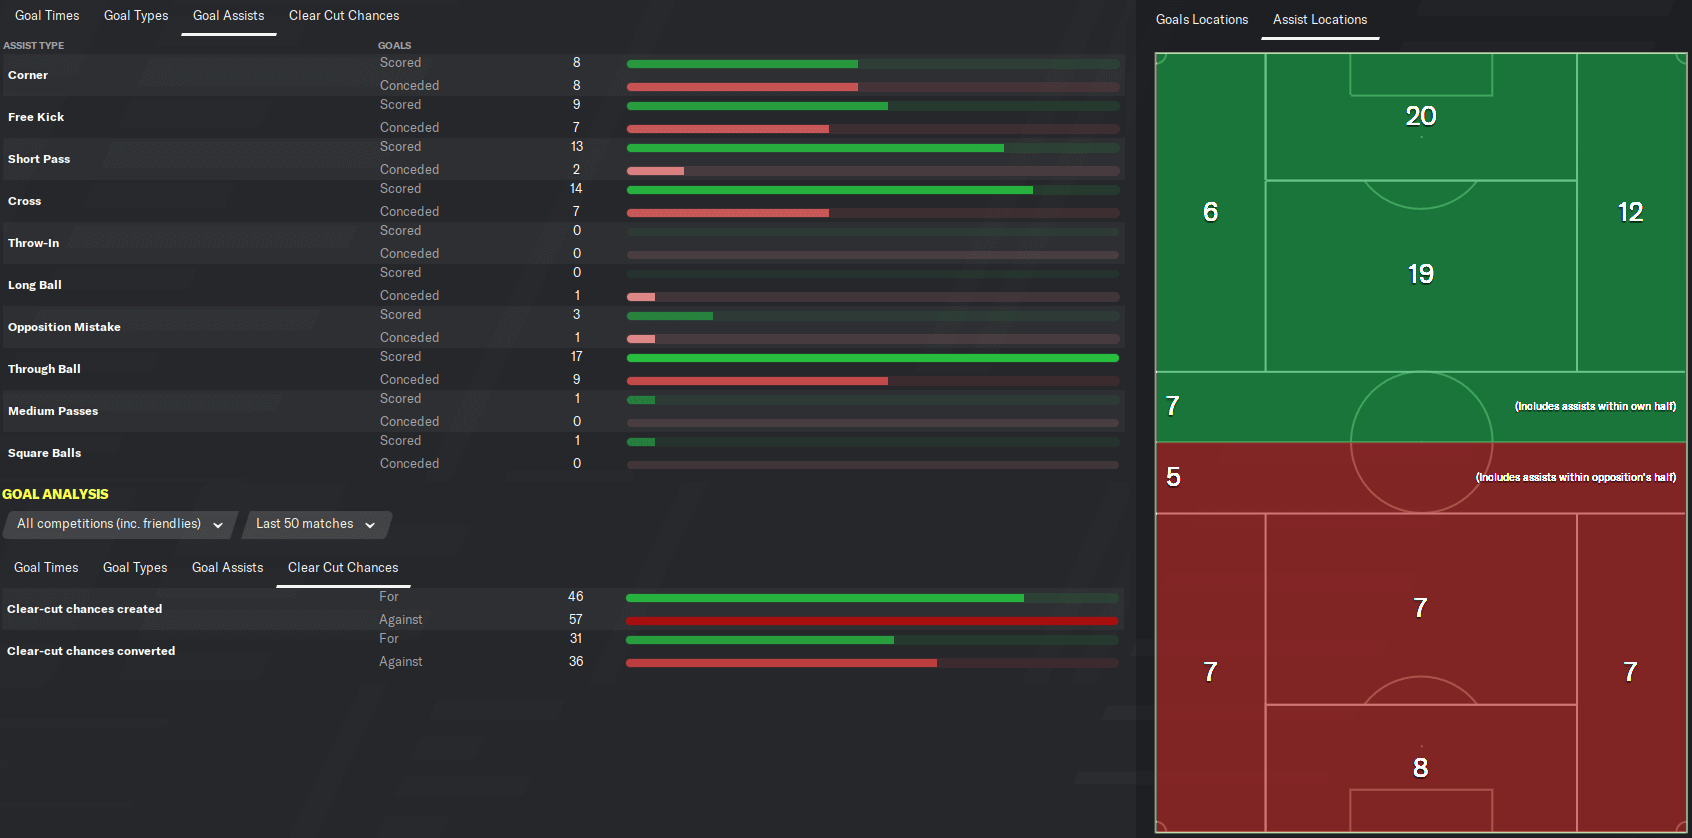 fm20 Leeds team stats assists locations